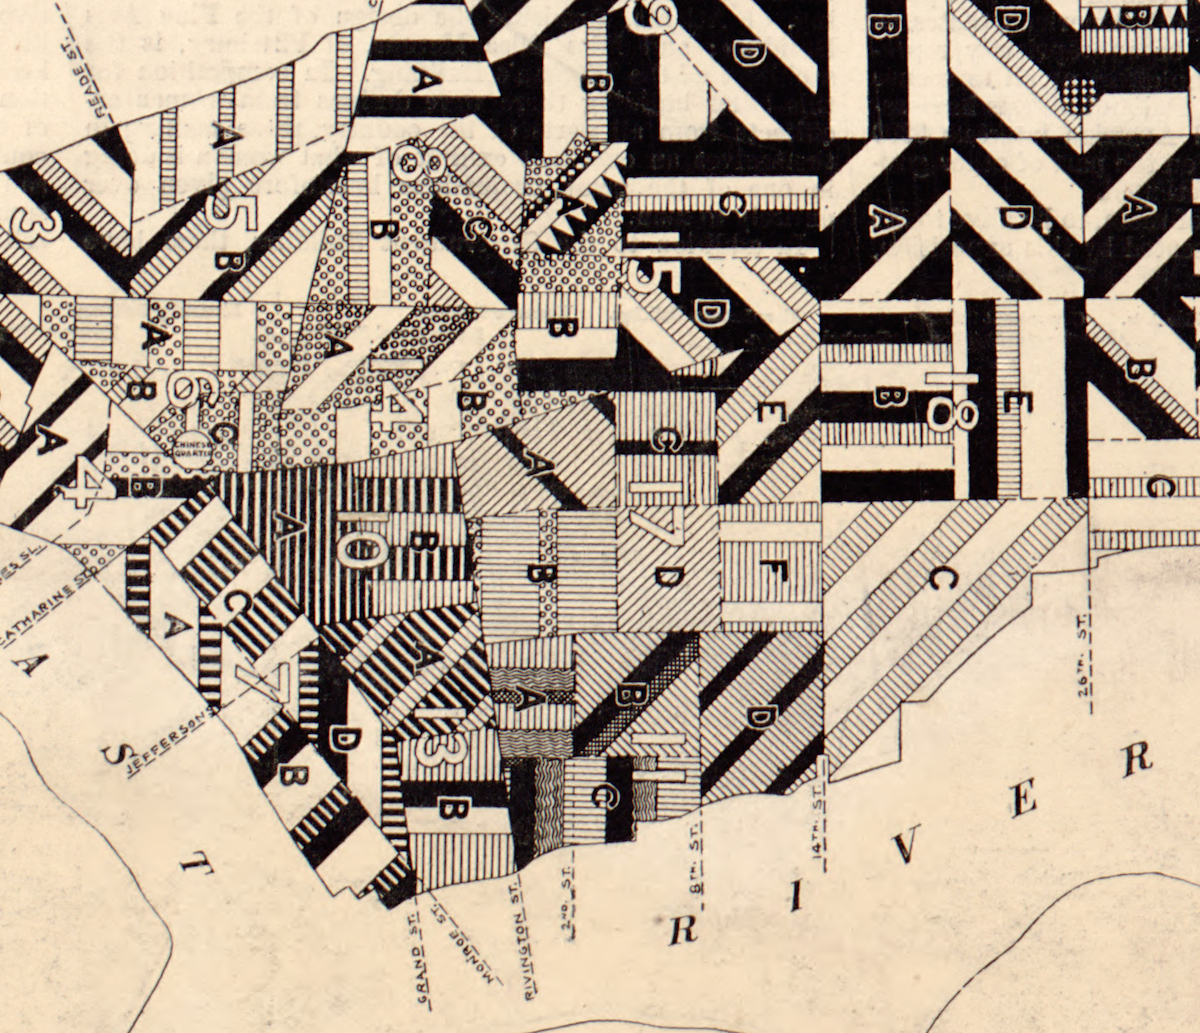 Sanitary_Maps_New_York_1894 detail